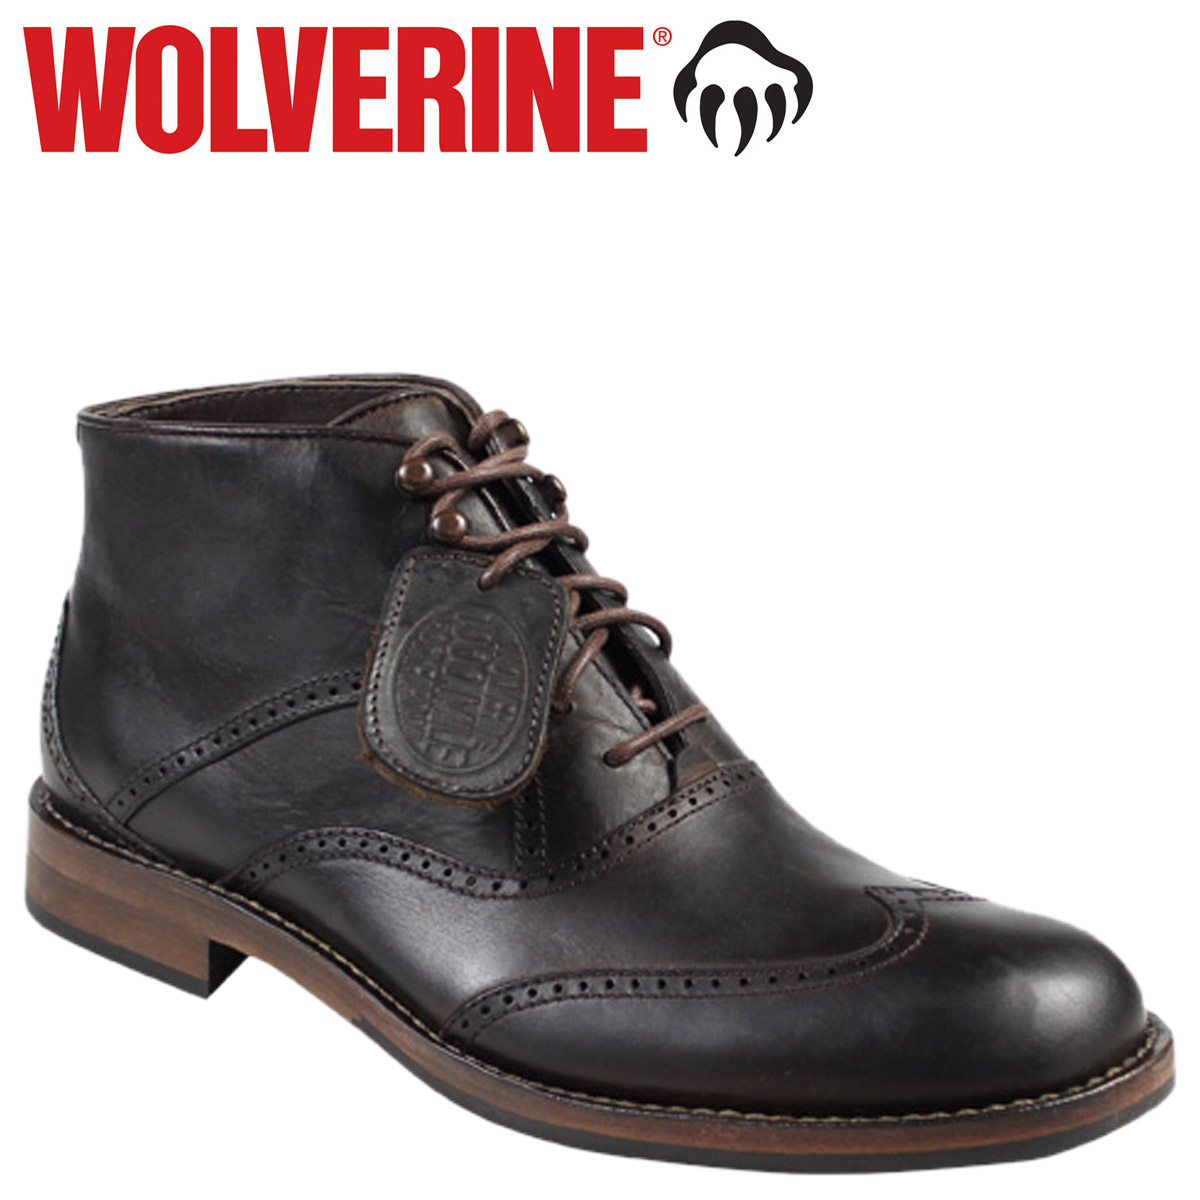 203ce821680 [SOLD OUT] WOLVERINE Wolverene 1,000 miles chukka boots WESLEY 1000 MILE  WINGTIP CHUKKA BOOT D Wise W05366 brown chukka boots men